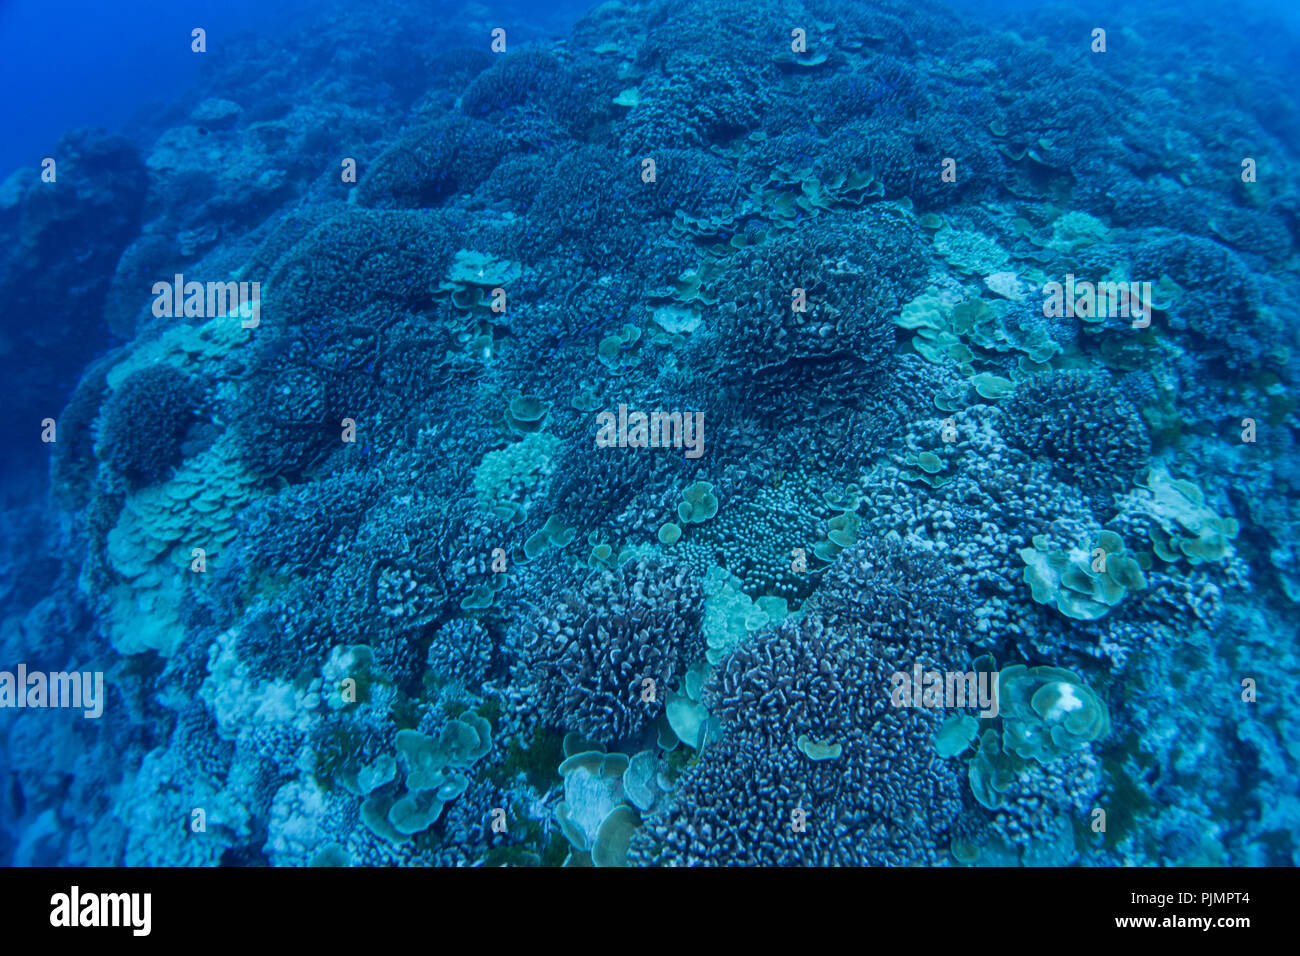 Bleached and dead corals at Millennium atoll in the southern line islands of Kiribati. - Stock Image